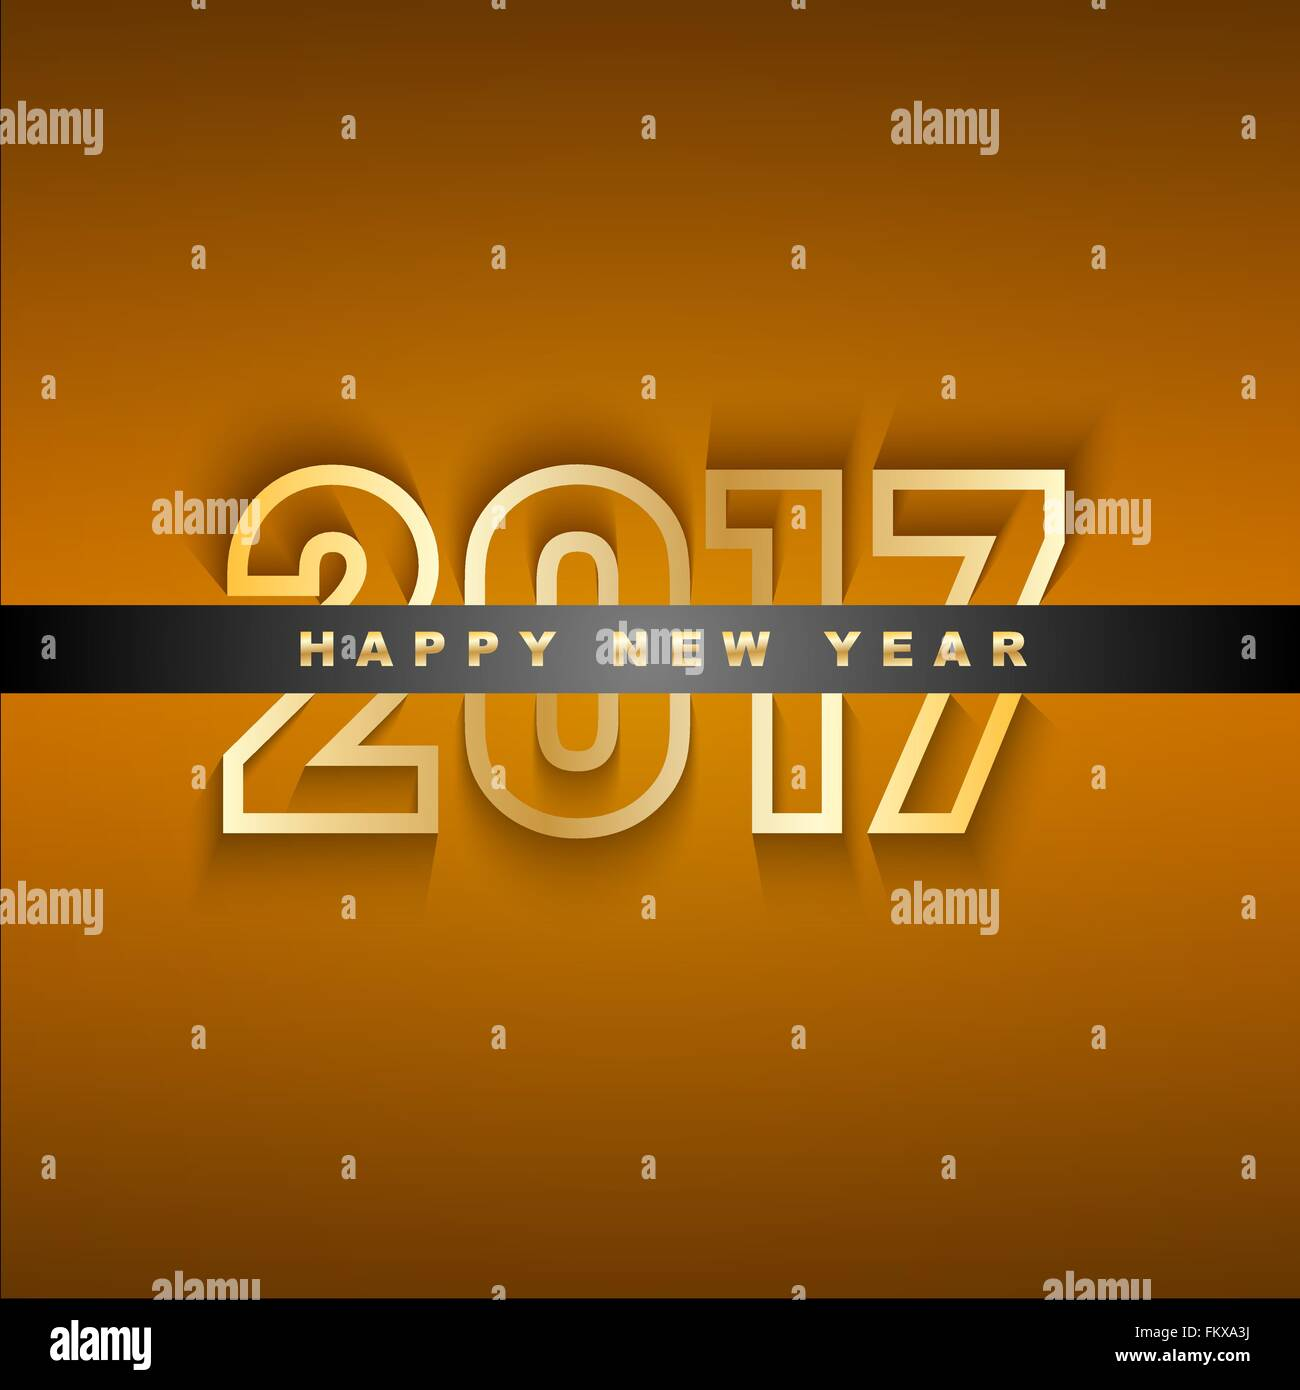 Golden 2017 New Year Greeting Card Stock Vector Art Illustration